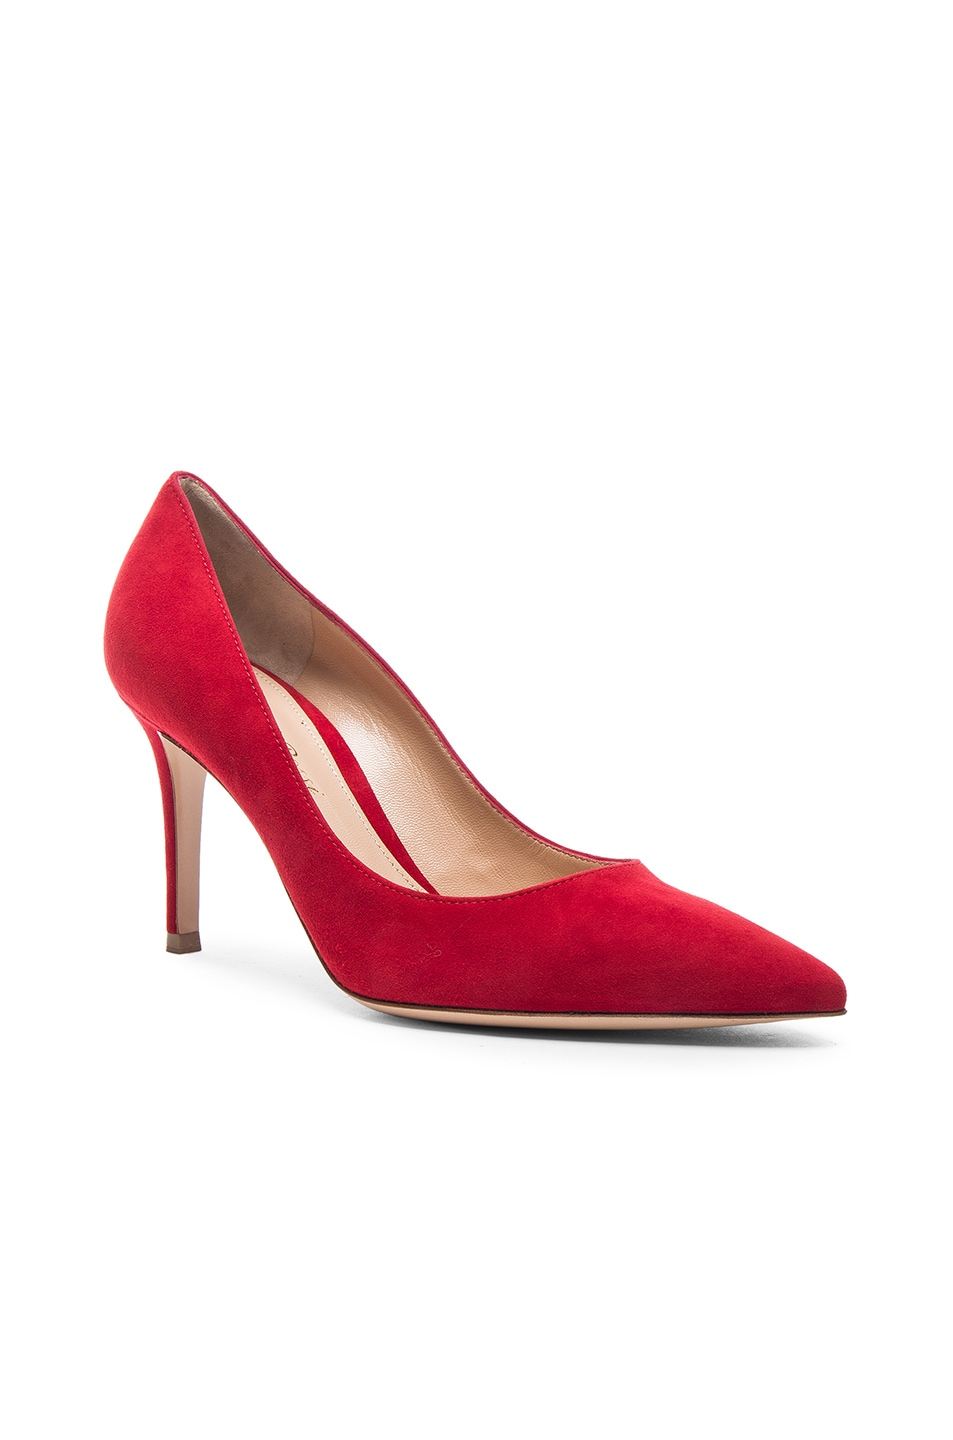 Image 2 of Gianvito Rossi Suede Gianvito 85 Pumps in Tabasco Red